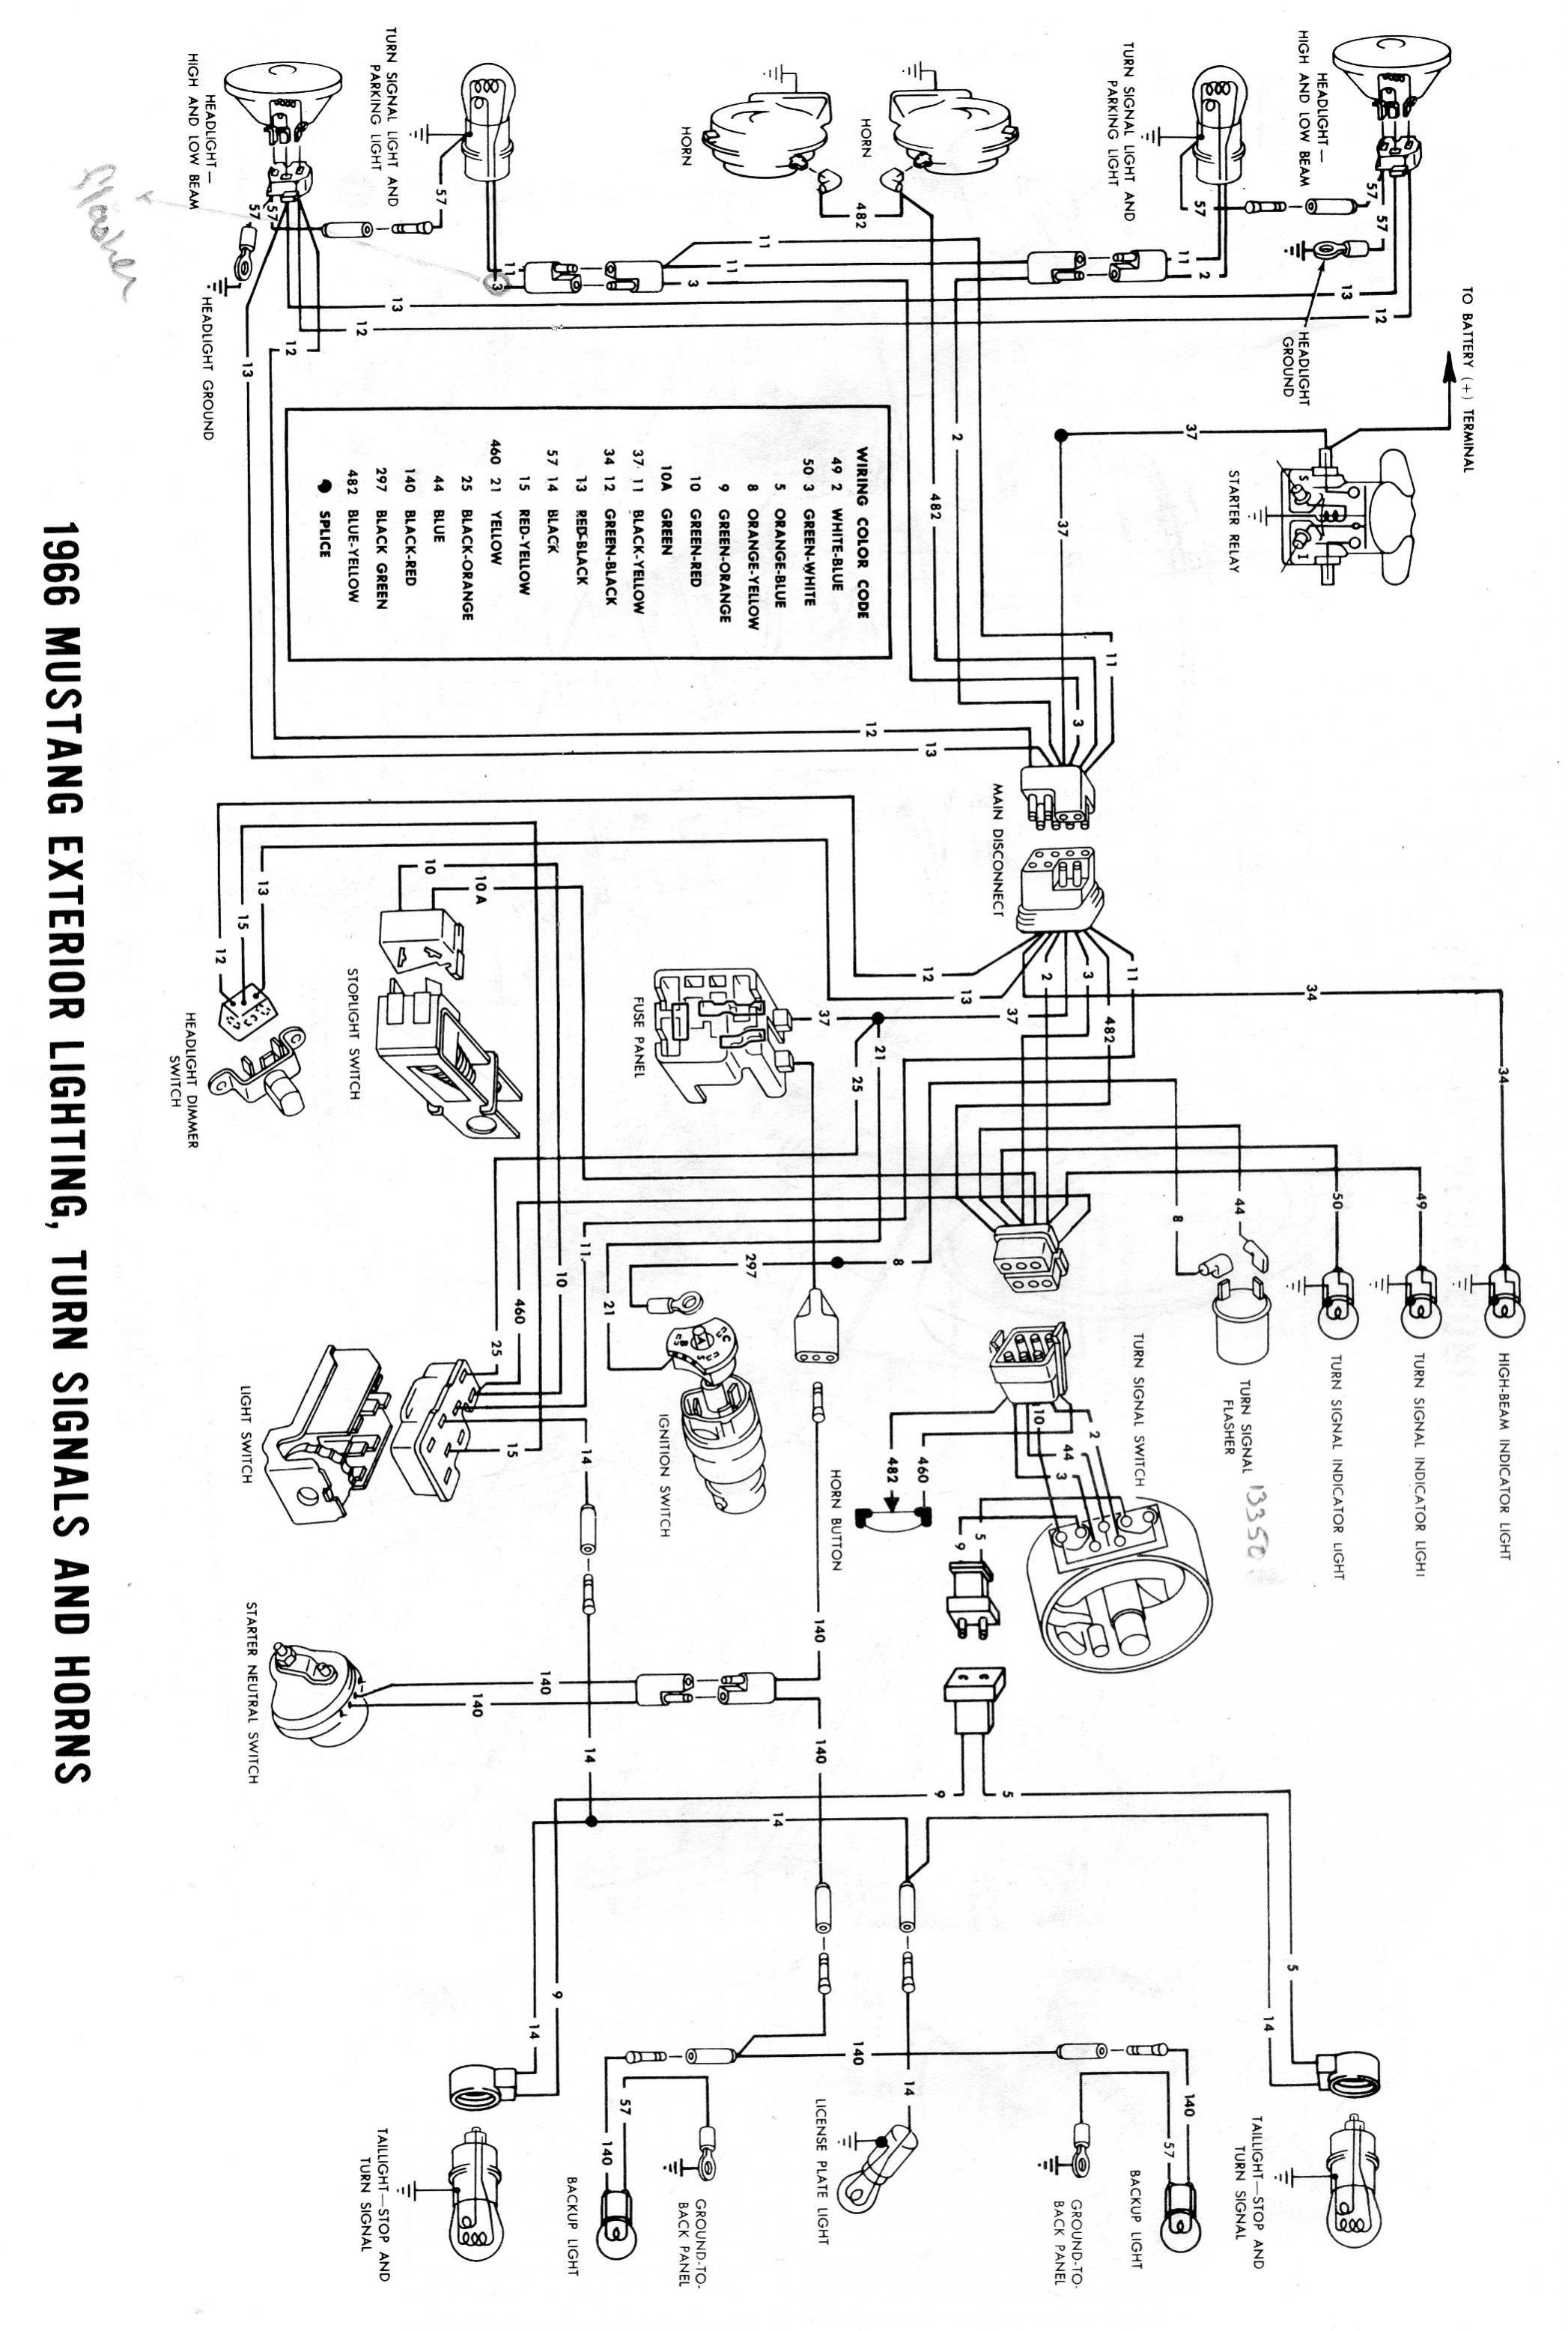 67 mustang exterior wiring diagram 67 automotive wiring diagrams description mustang exterior wiring diagram